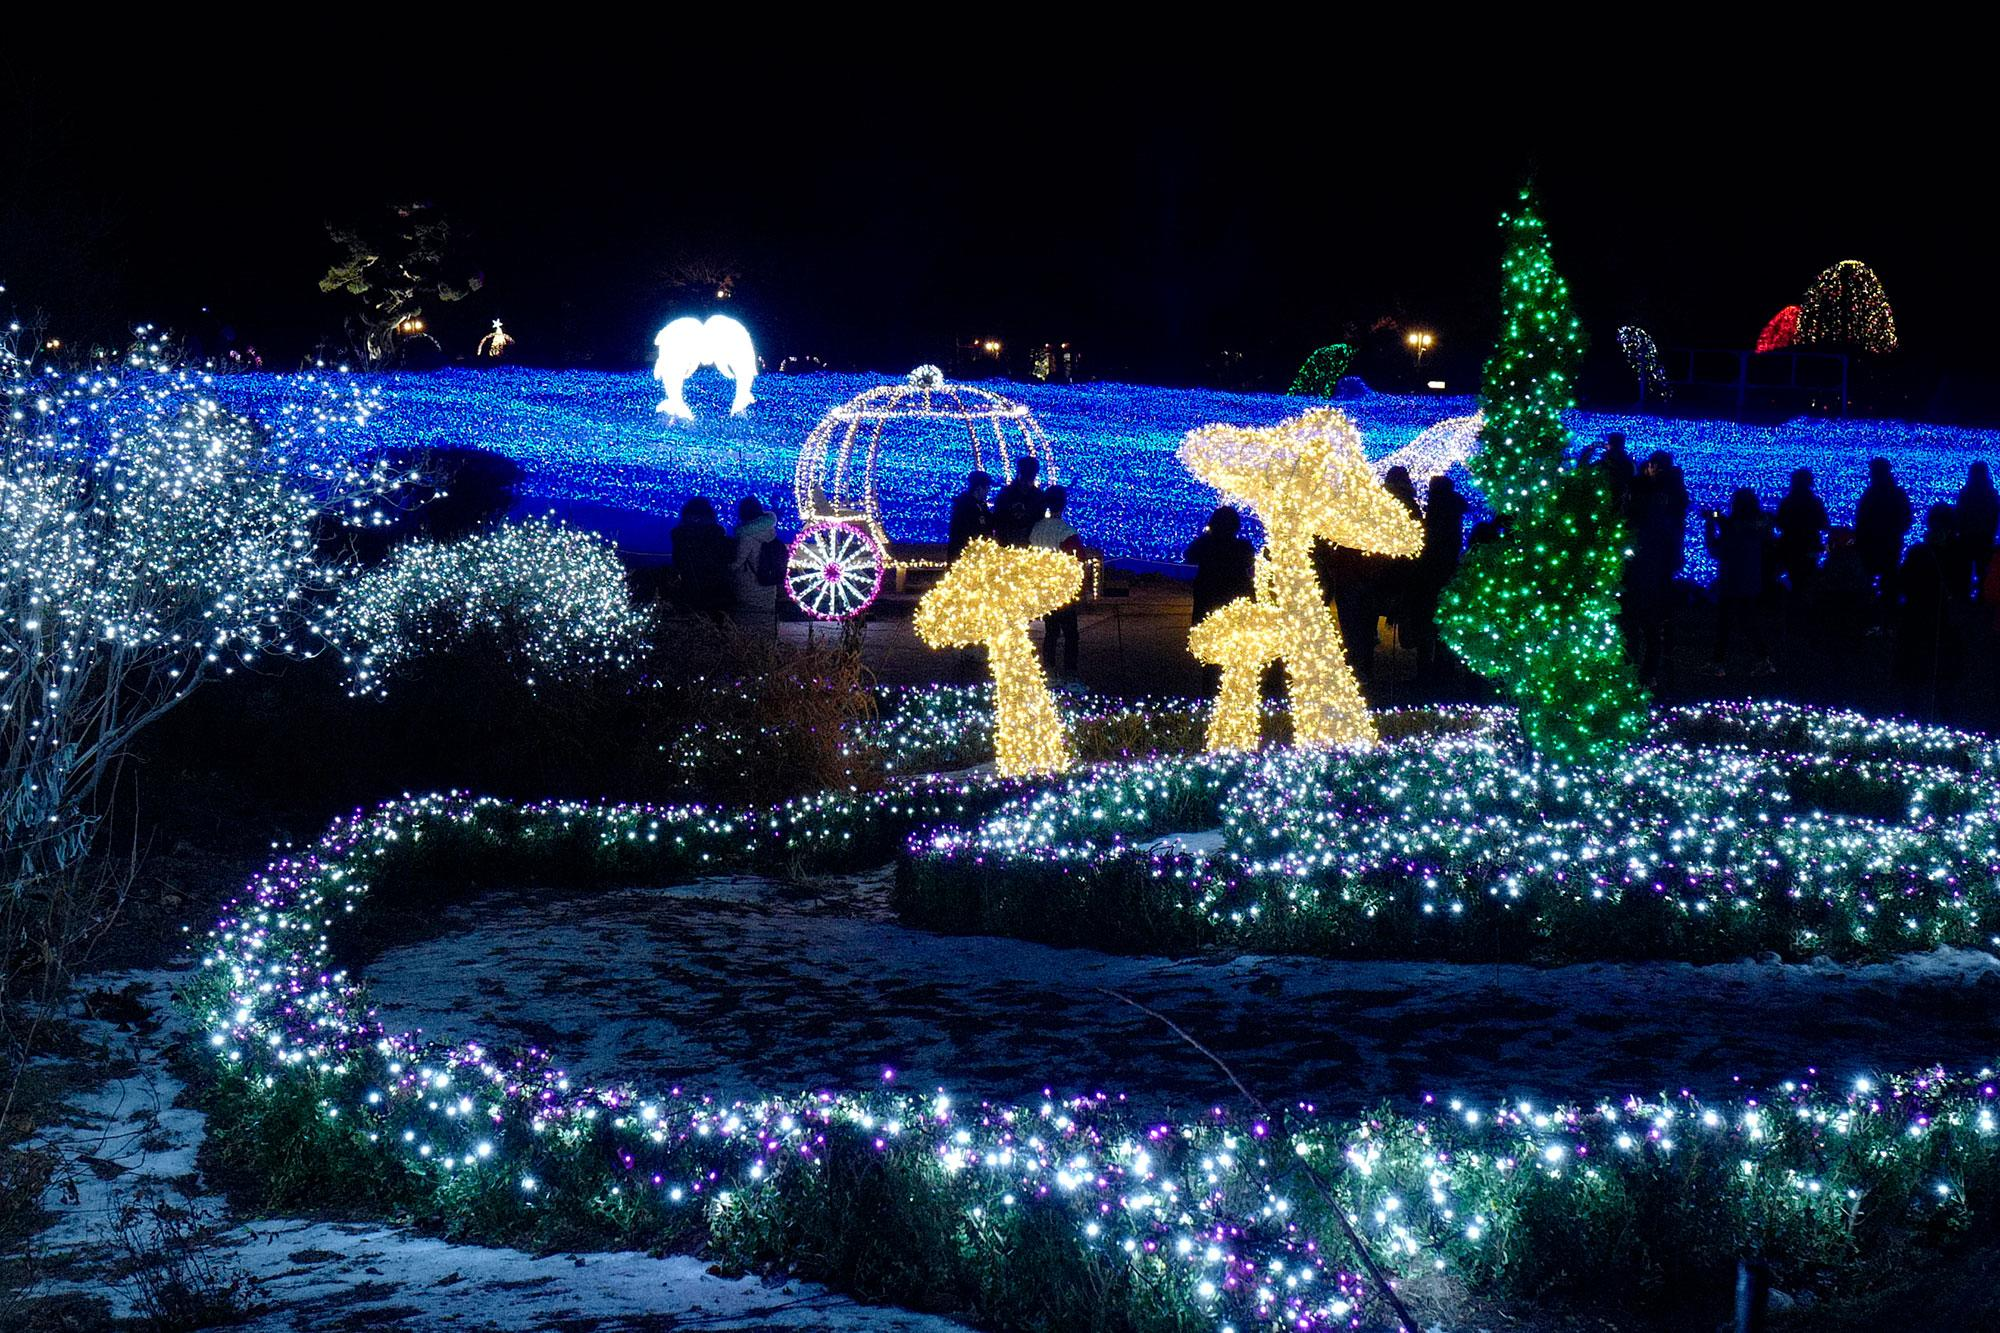 <p>Visitors look at decorated Christmas trees at the Garden of Morning Calm in Gapyeong, South Korea on Dec. 19, 2016. The Garden of Morning Calm was founded by professor Sang-kyung Han and it opened on May 11,1996 as a private garden. (Photo: Jeon Heon-Kyun/EPA) </p>